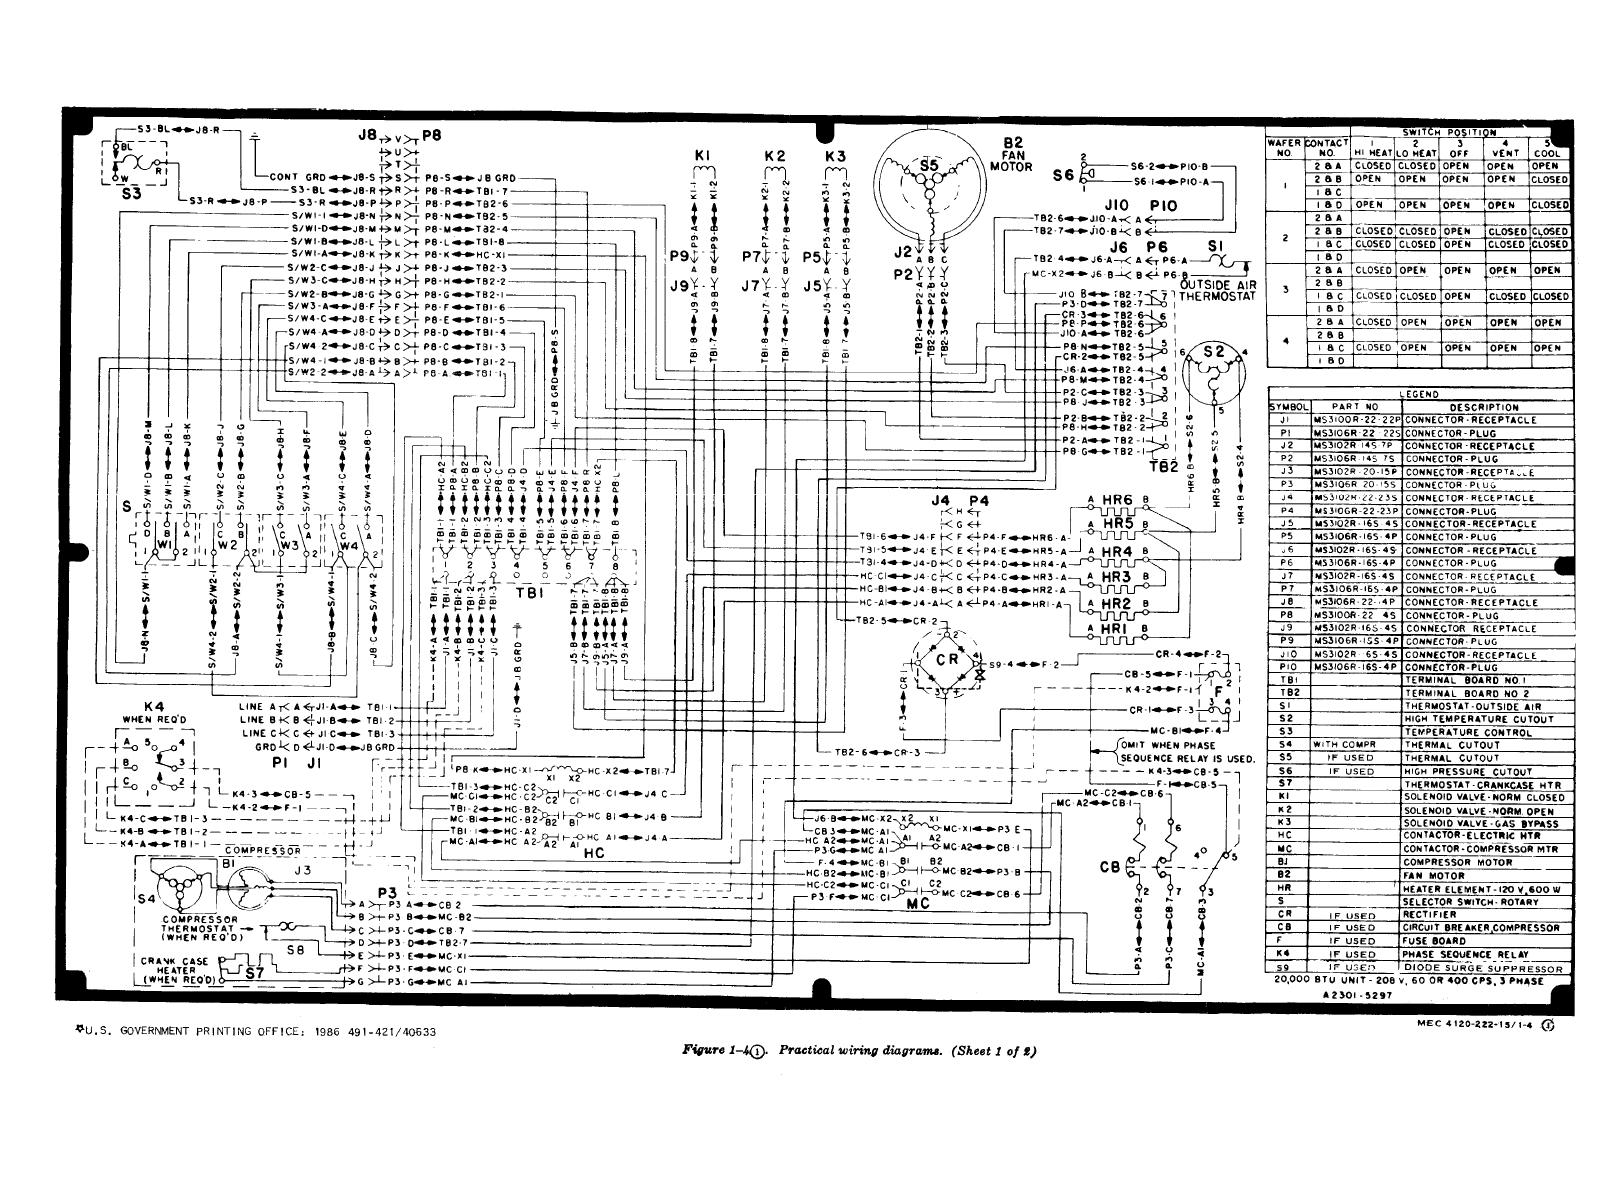 Trane Xe 1200 Wiring Diagram from schematron.org